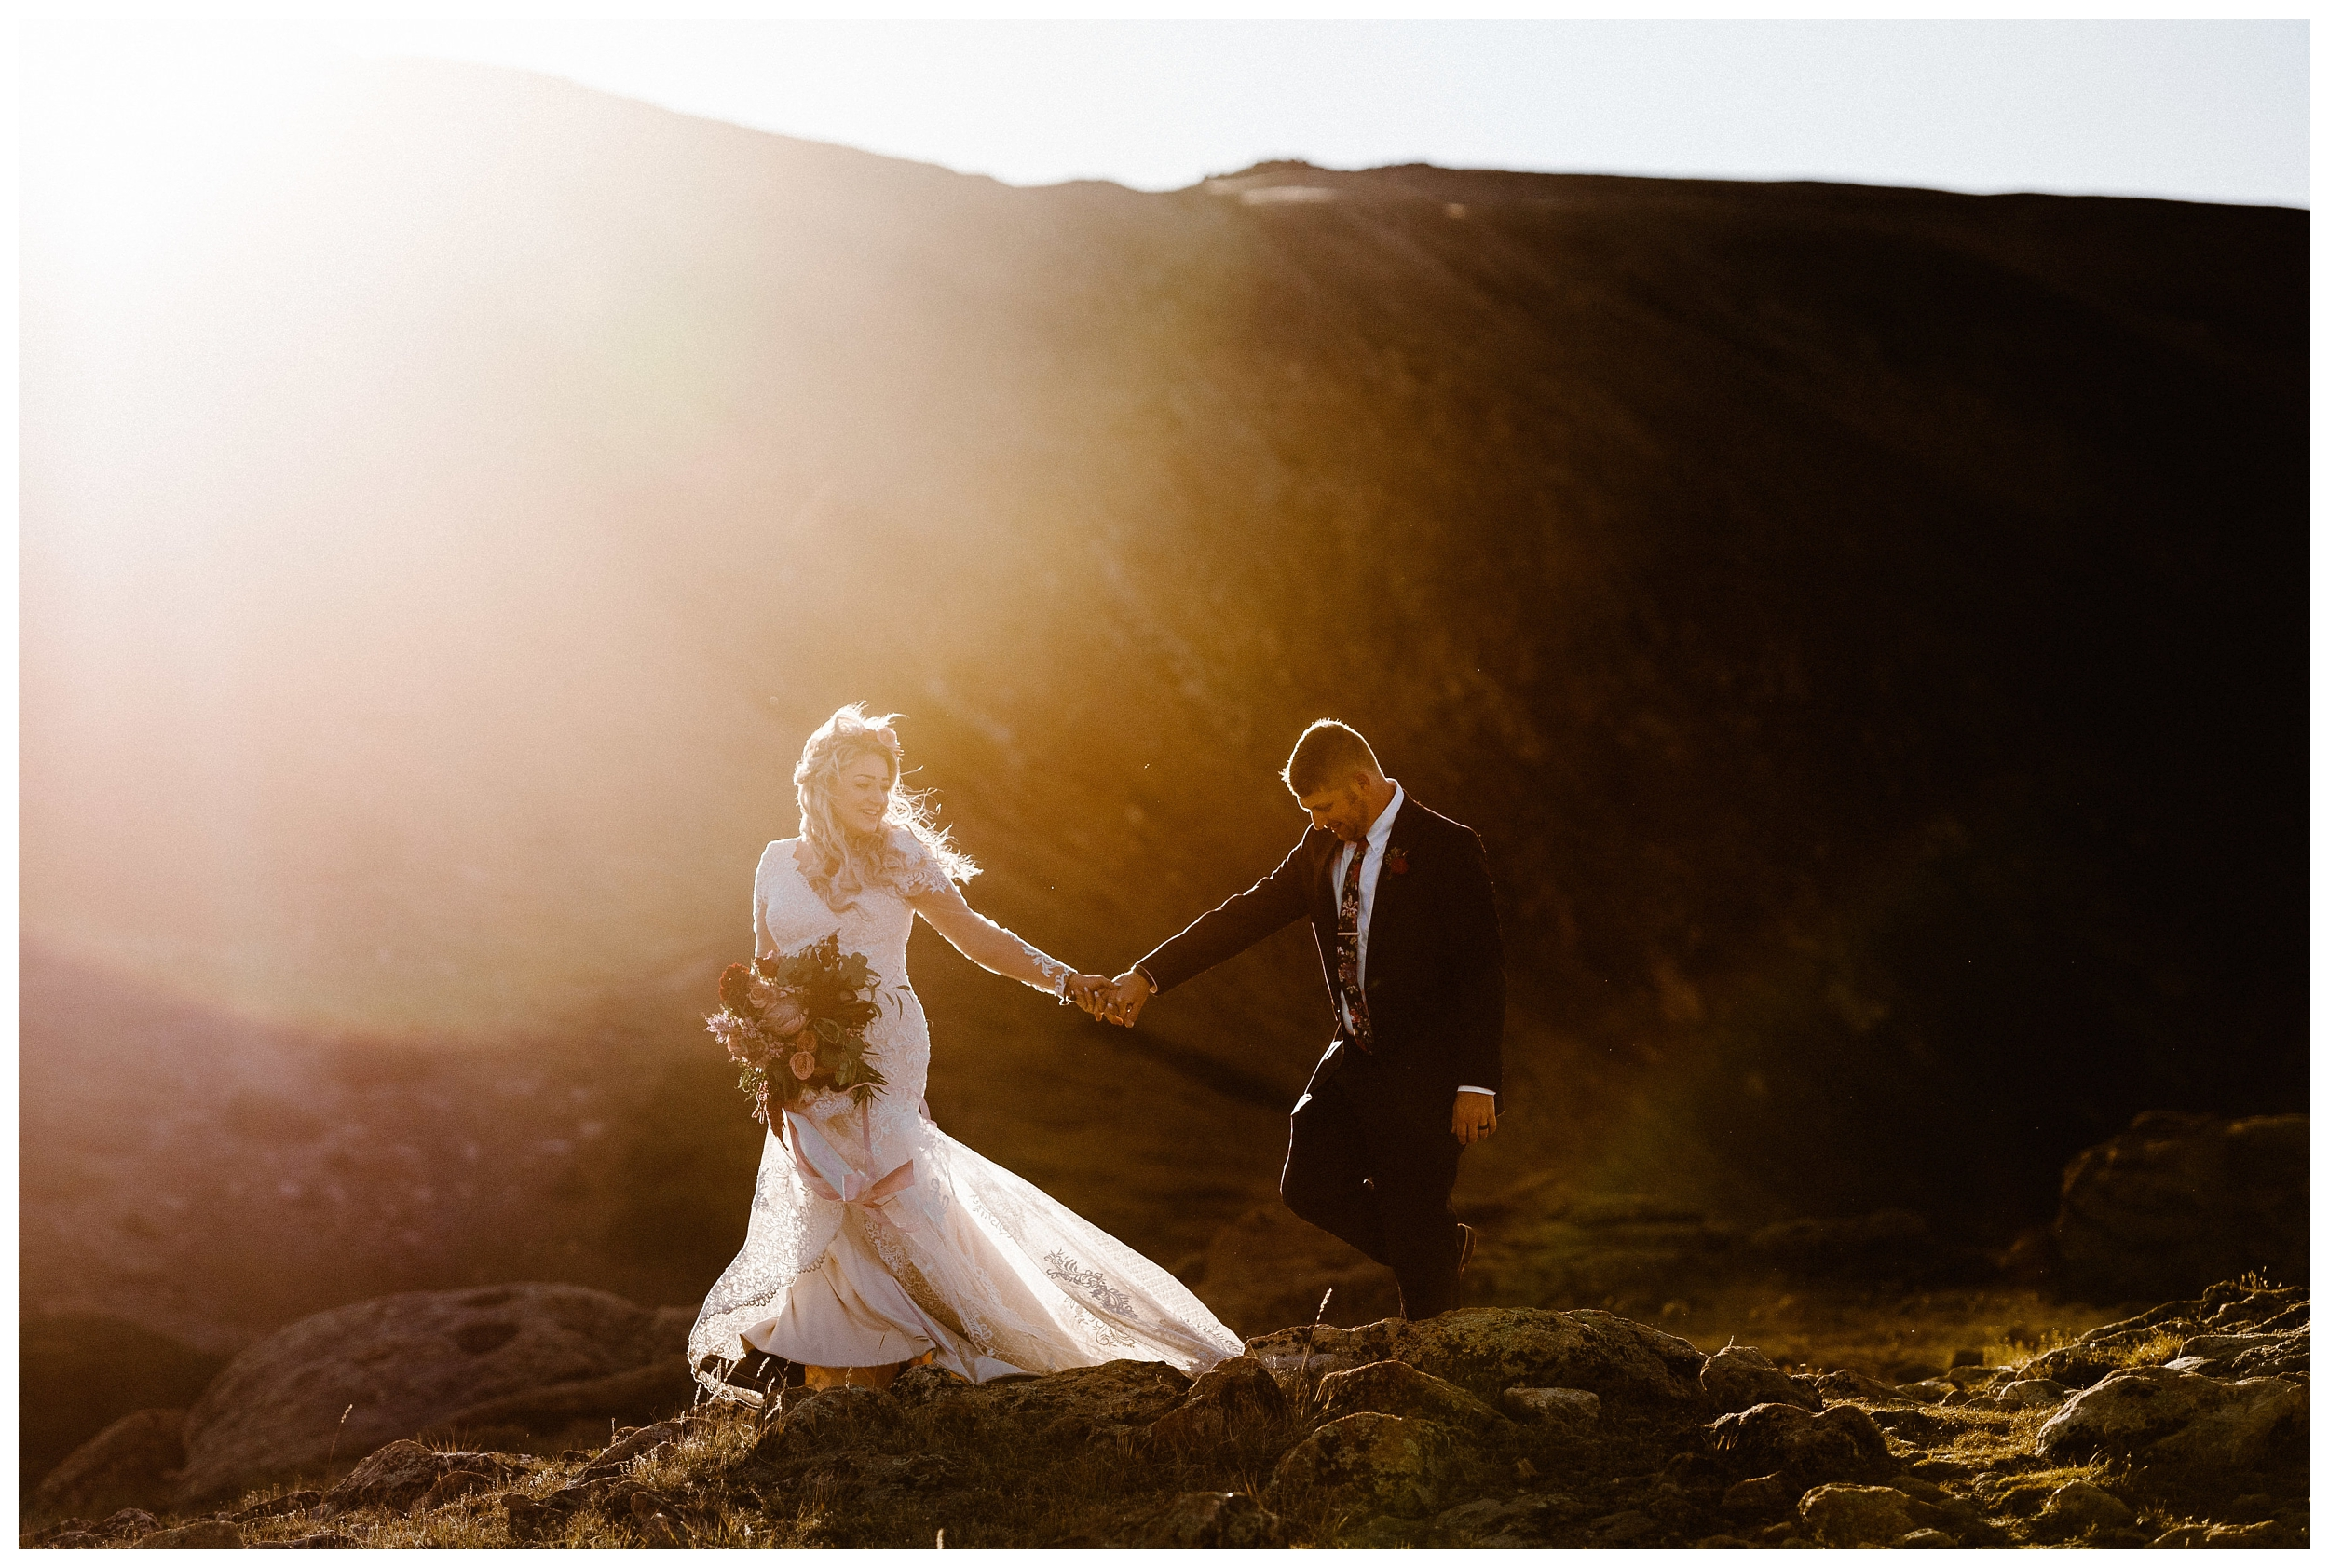 It takes everyone time to get used to a camera being pointed at your face. If you elope at sunset, the most beautiful dreamy light you'll have the whole time will happen towards the end of your experience so you'll be completely comfortable with us taking your photos. Photo by Maddie Mae Photo, Adventure Instead.